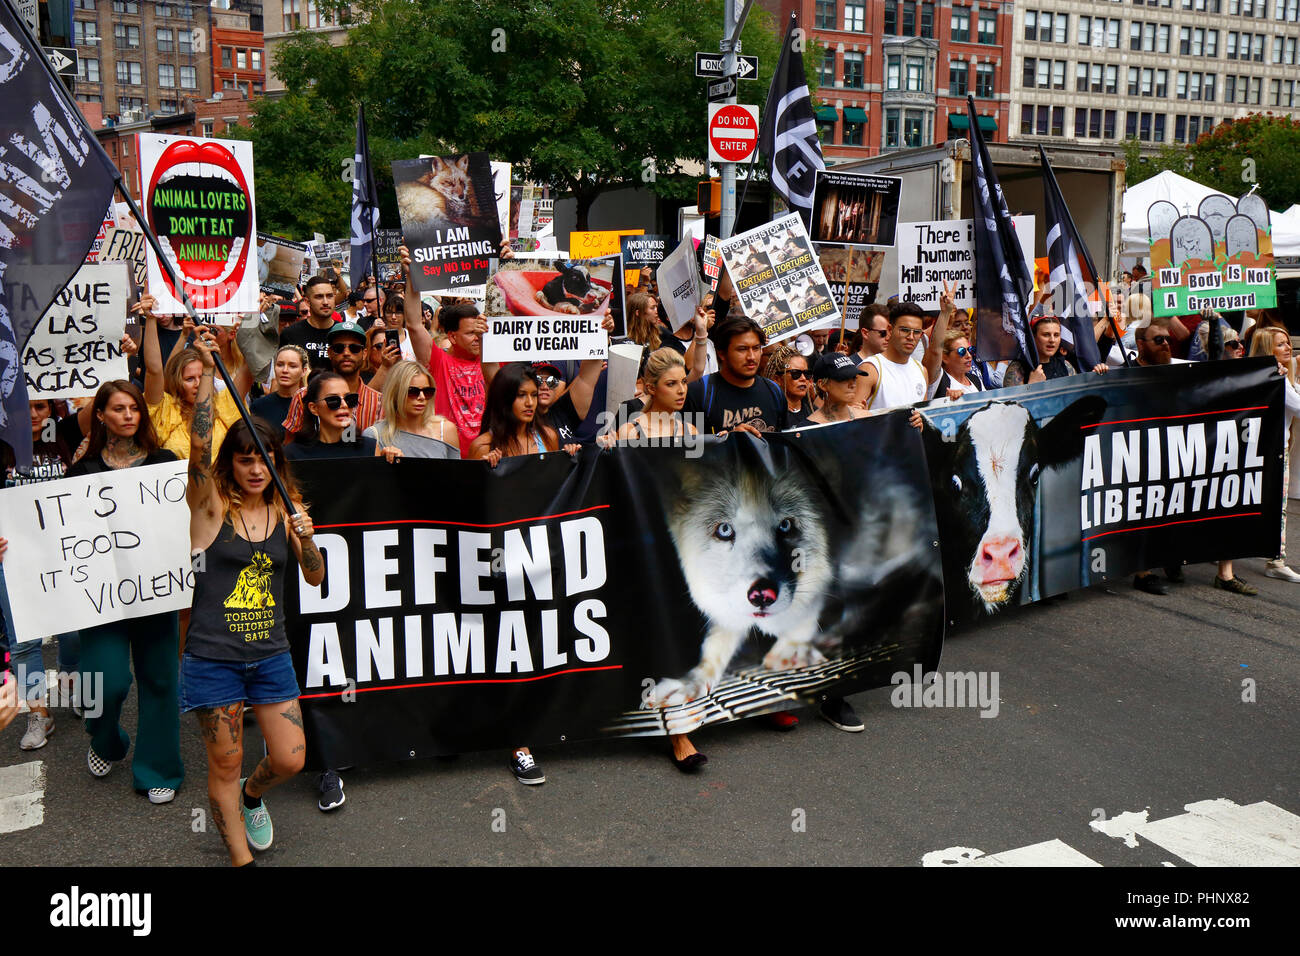 New York, NY, USA. 1st September, 2018. Animal rights activists and demonstrators march in Union Square at the Official Animal Rights March NYC organized by Surge, and Total Liberation New York. Credit: Robert K. Chin/Alamy Live News - Stock Image